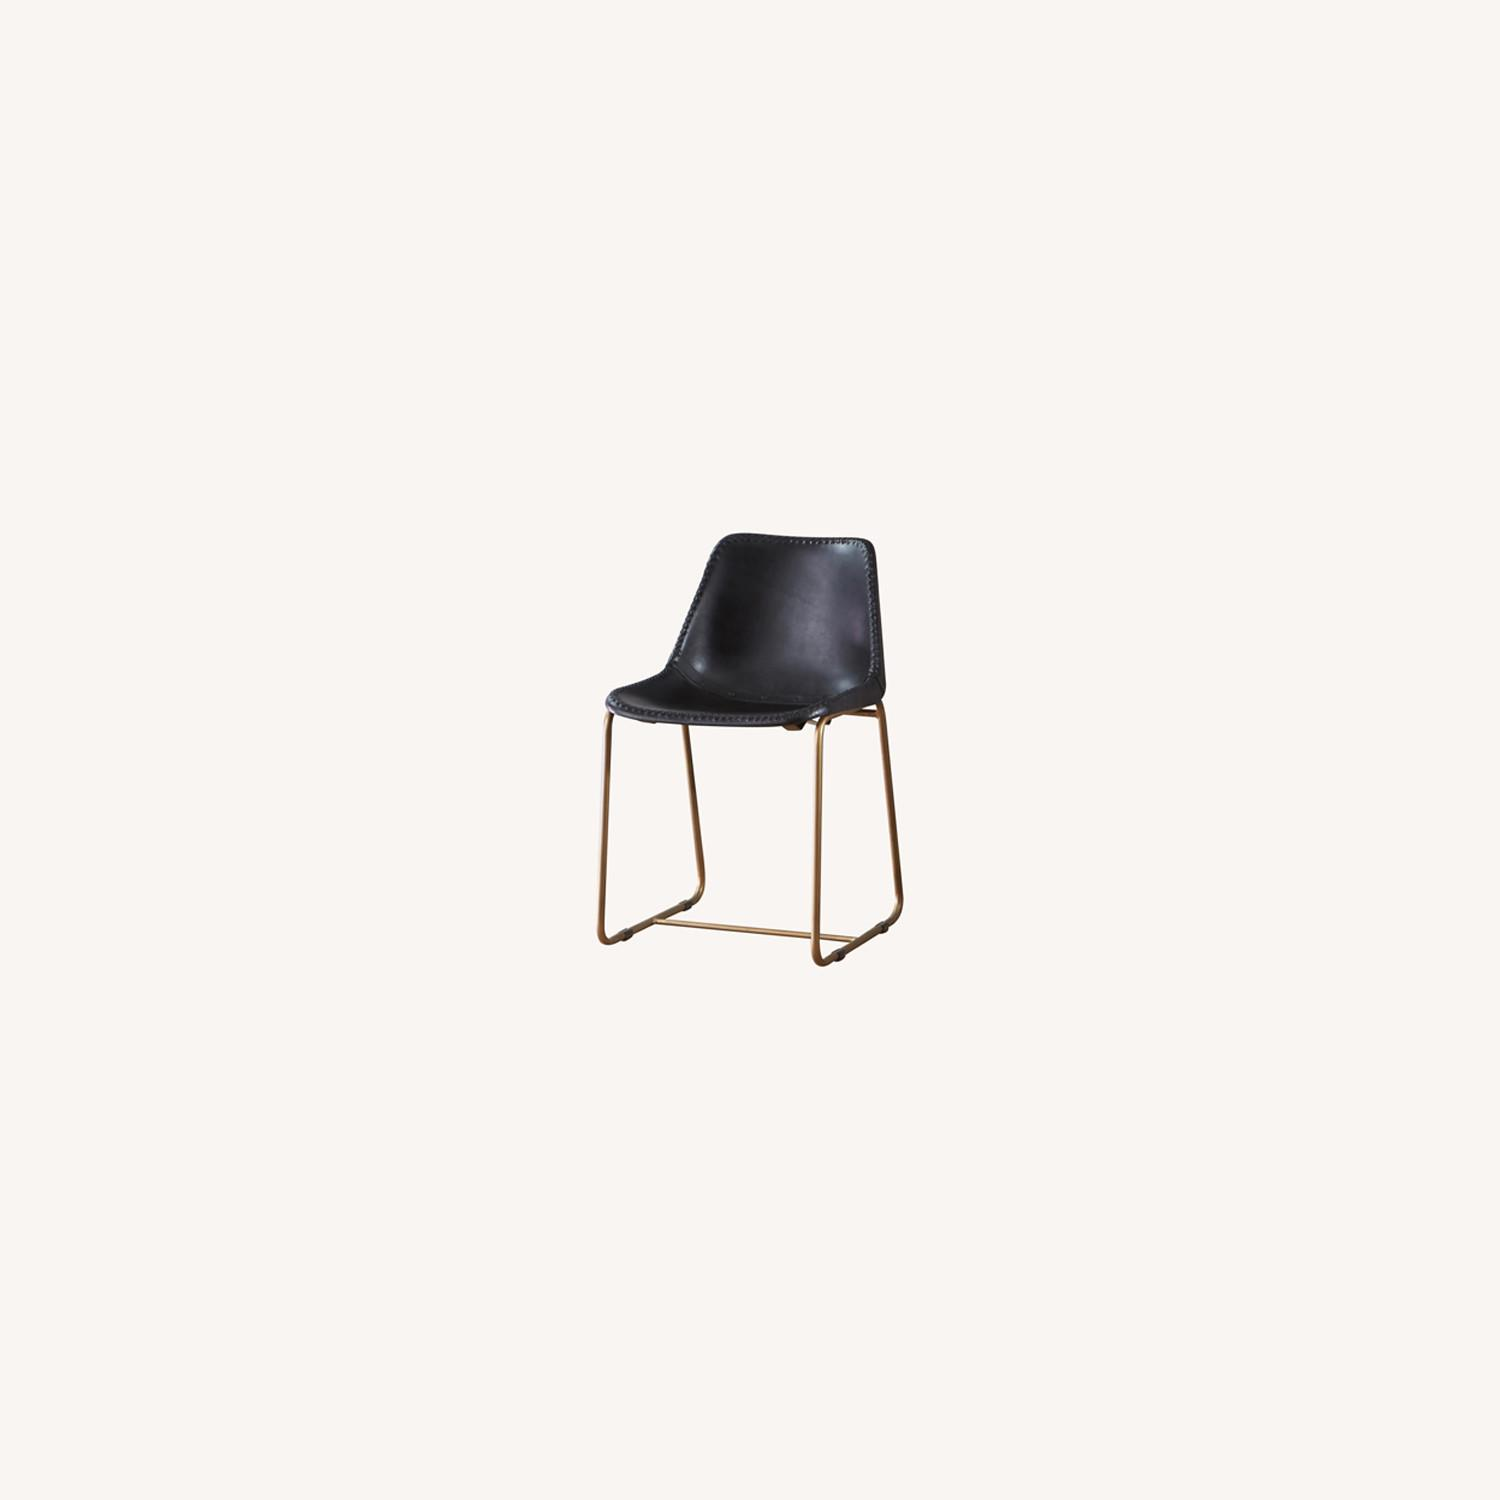 CB2 Roadhouse Black Leather Dining Chairs - image-0